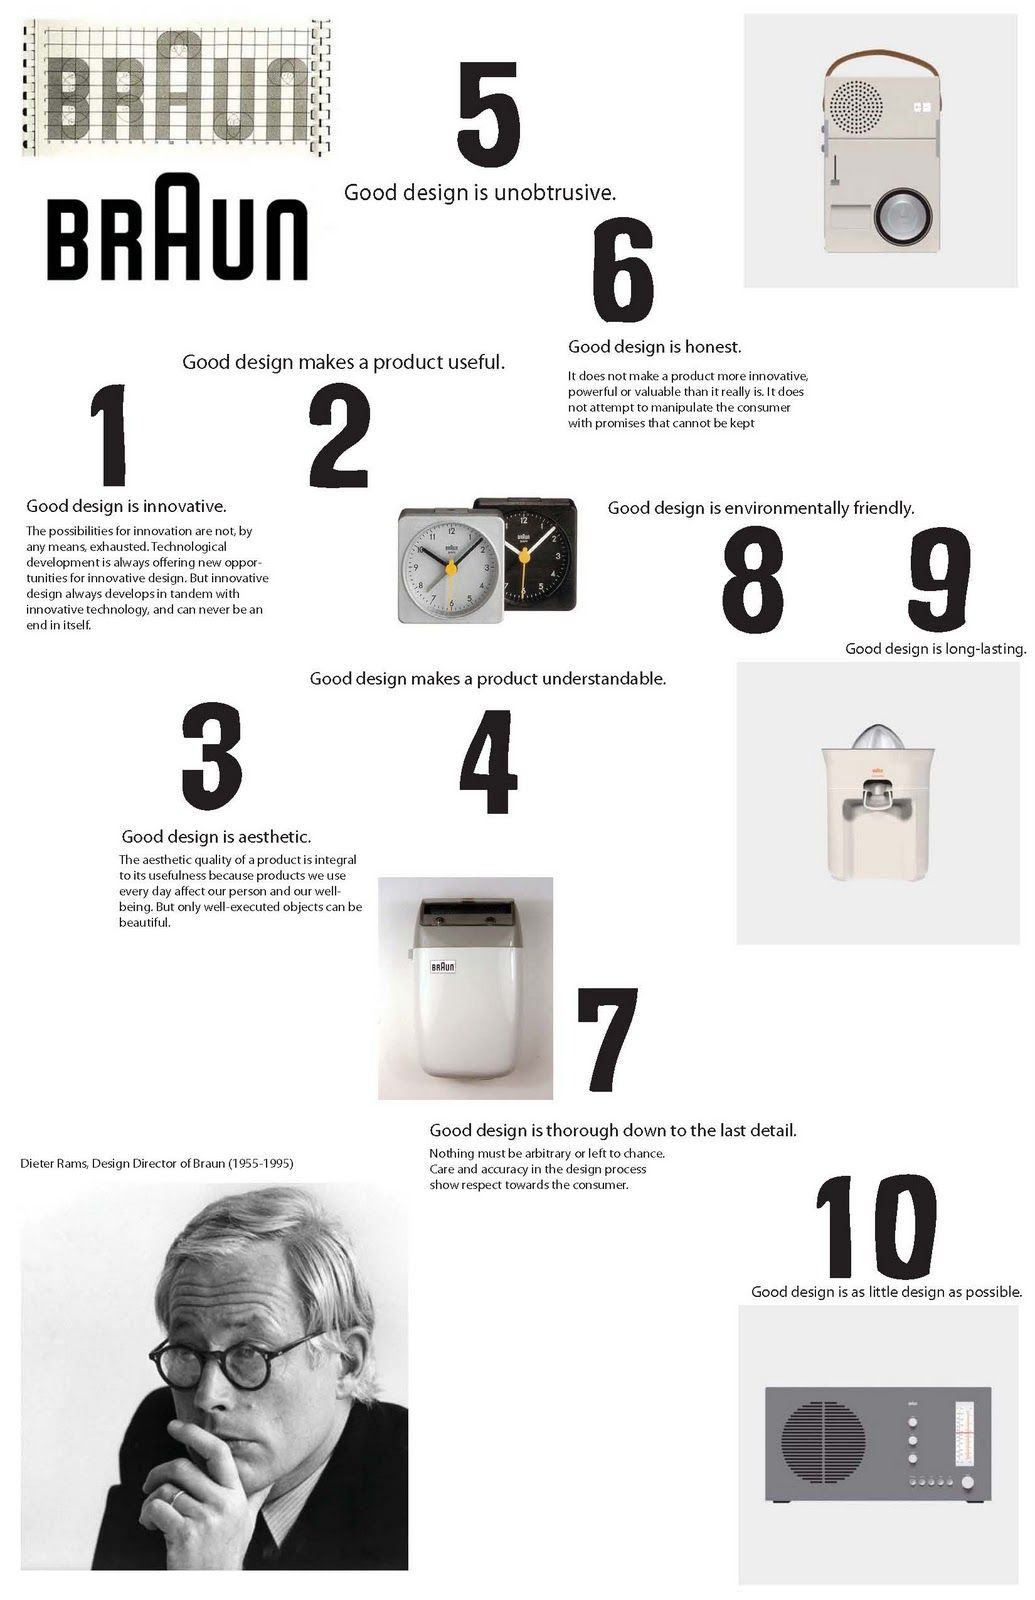 A good poster design - Dieter Rams Ten Rules Of Good Design Poster Braun Pic On Design You Trust Graphic Design Pinterest Dieter Rams Design Posters And Product Design